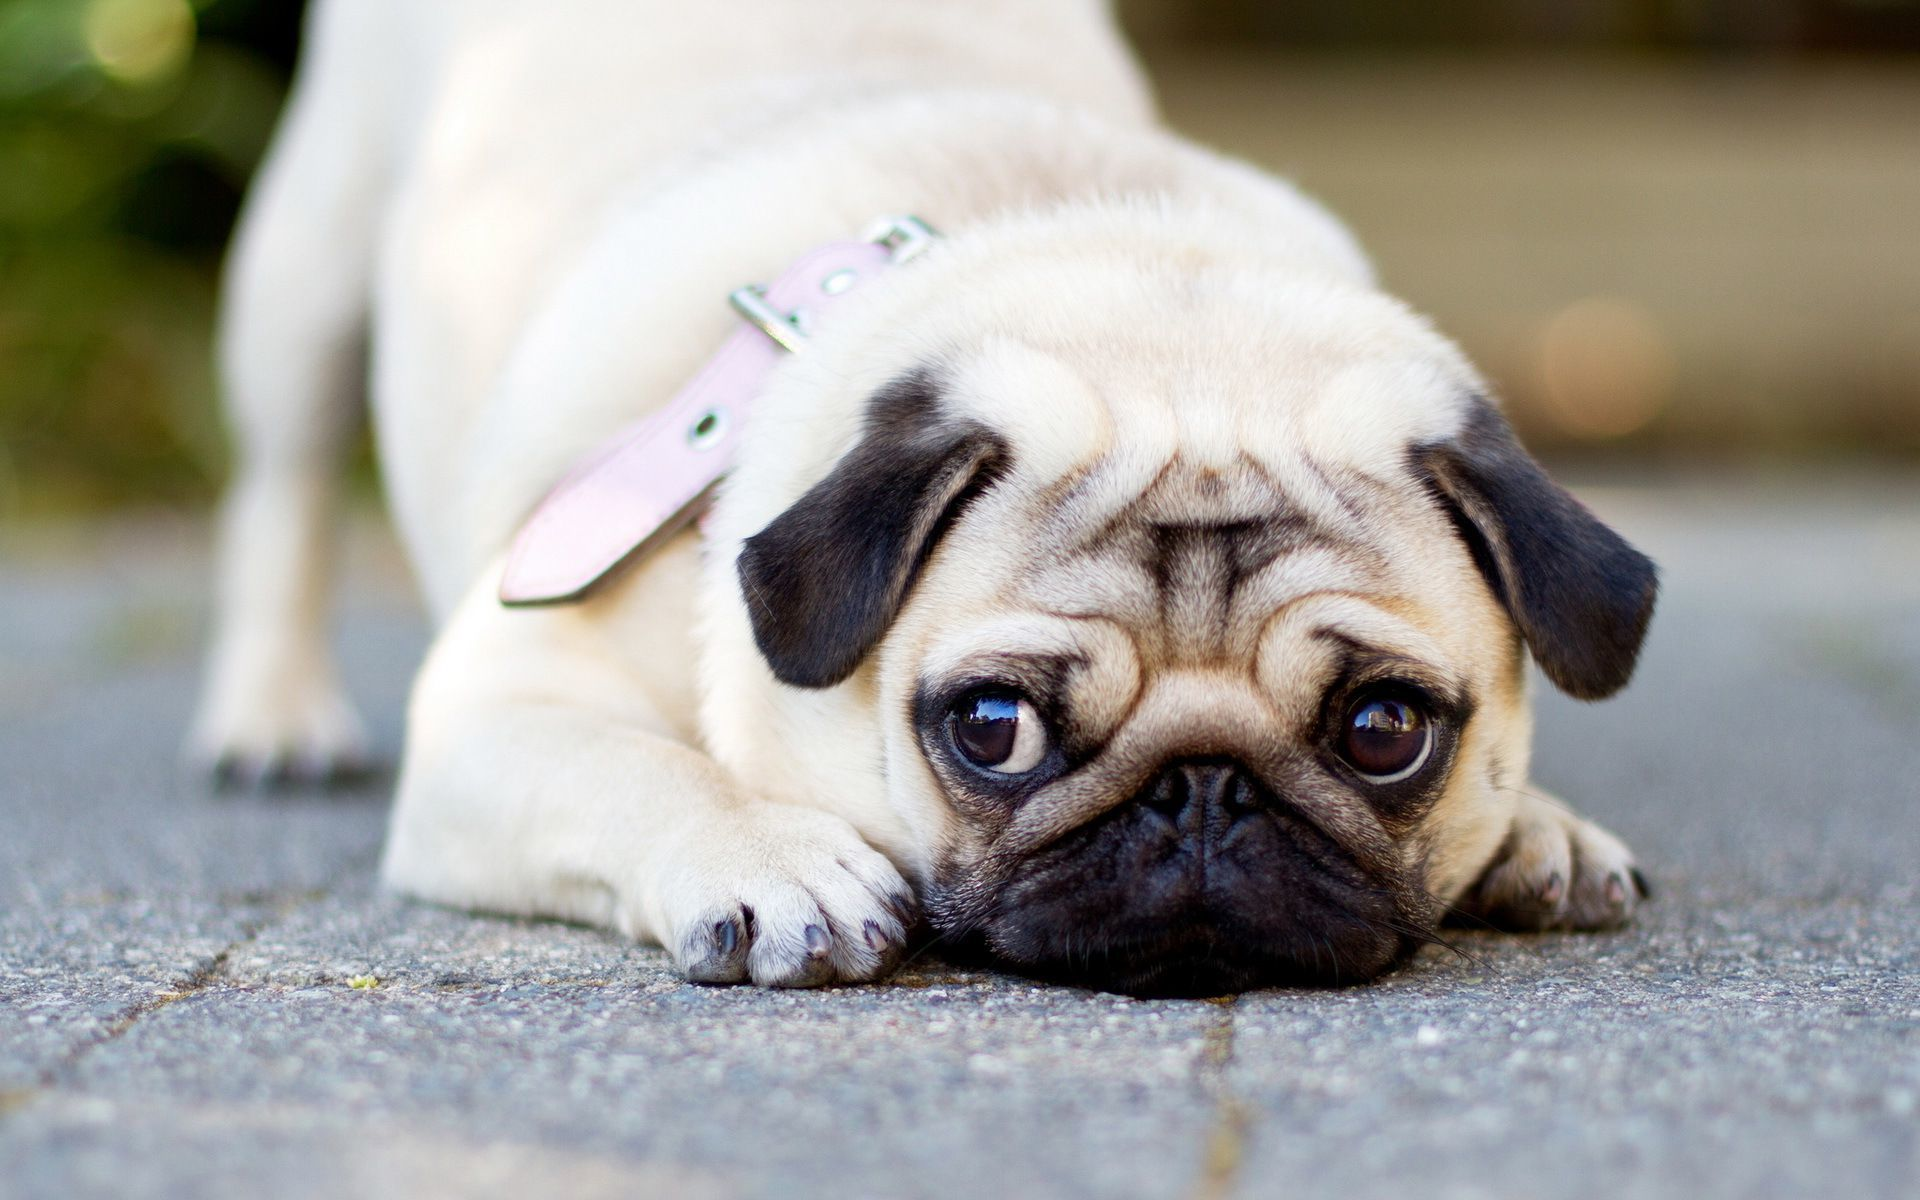 Cute Dogs And Puppies Wallpaper For Mobile Free Hd Pug Wallpapers Pixelstalk Net